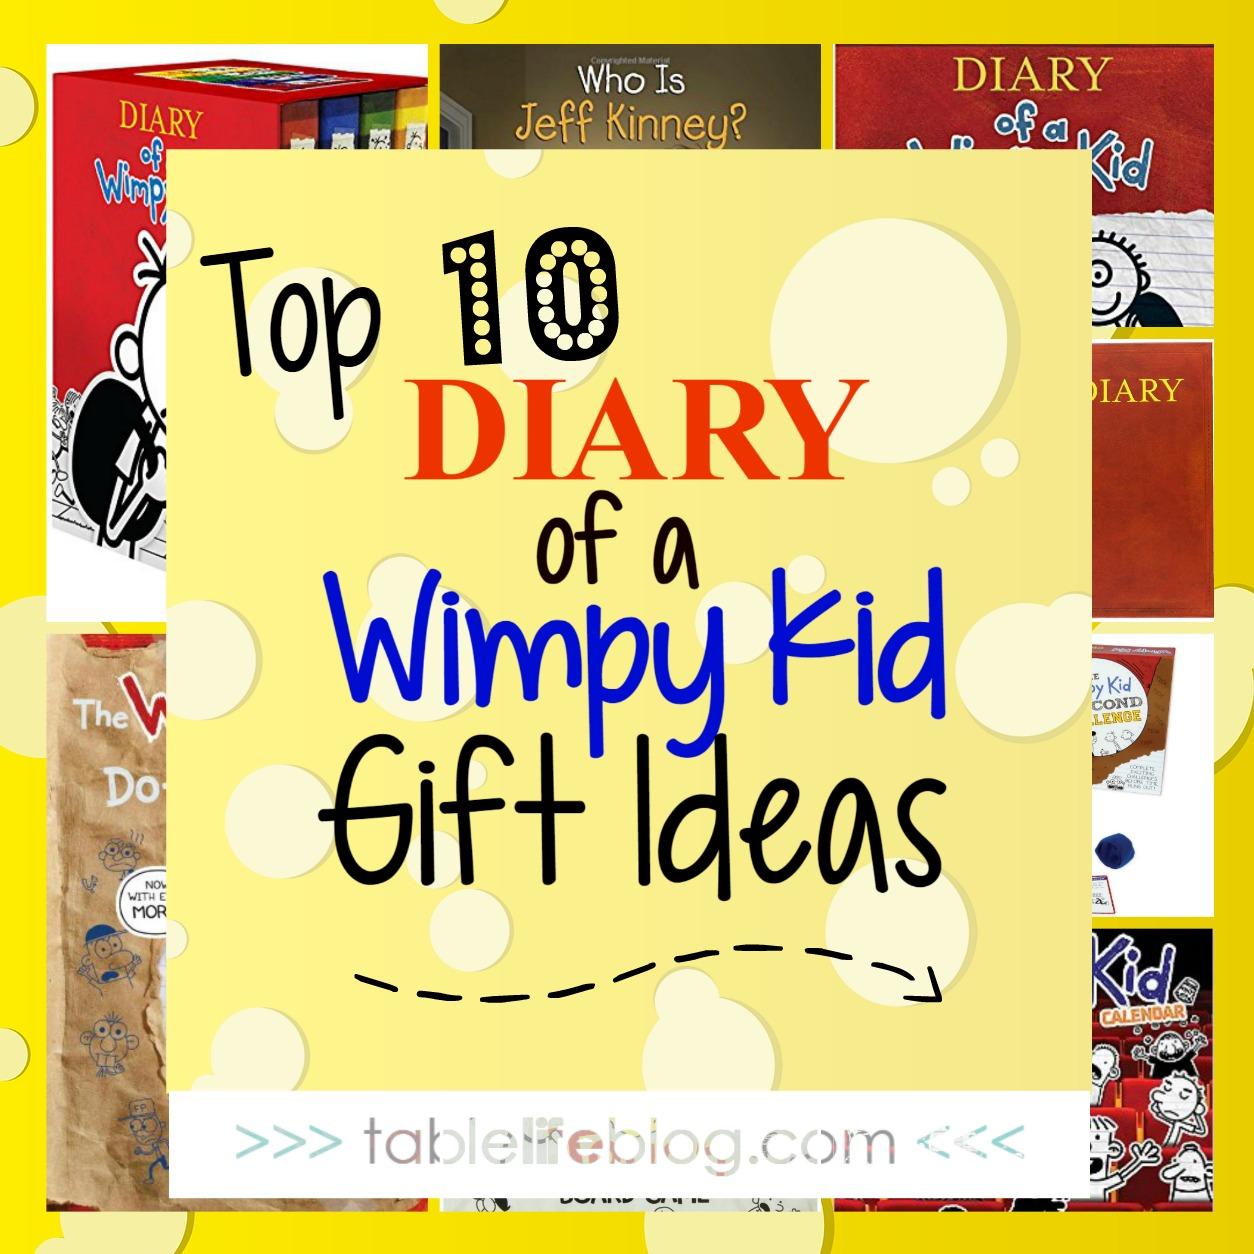 Diary of a wimpy kid gift guide top 10 wimpy kid gifts for your diary of a wimpy kid gift guide top 10 wimpy kid gifts for your kiddo tablelifeblog solutioingenieria Image collections